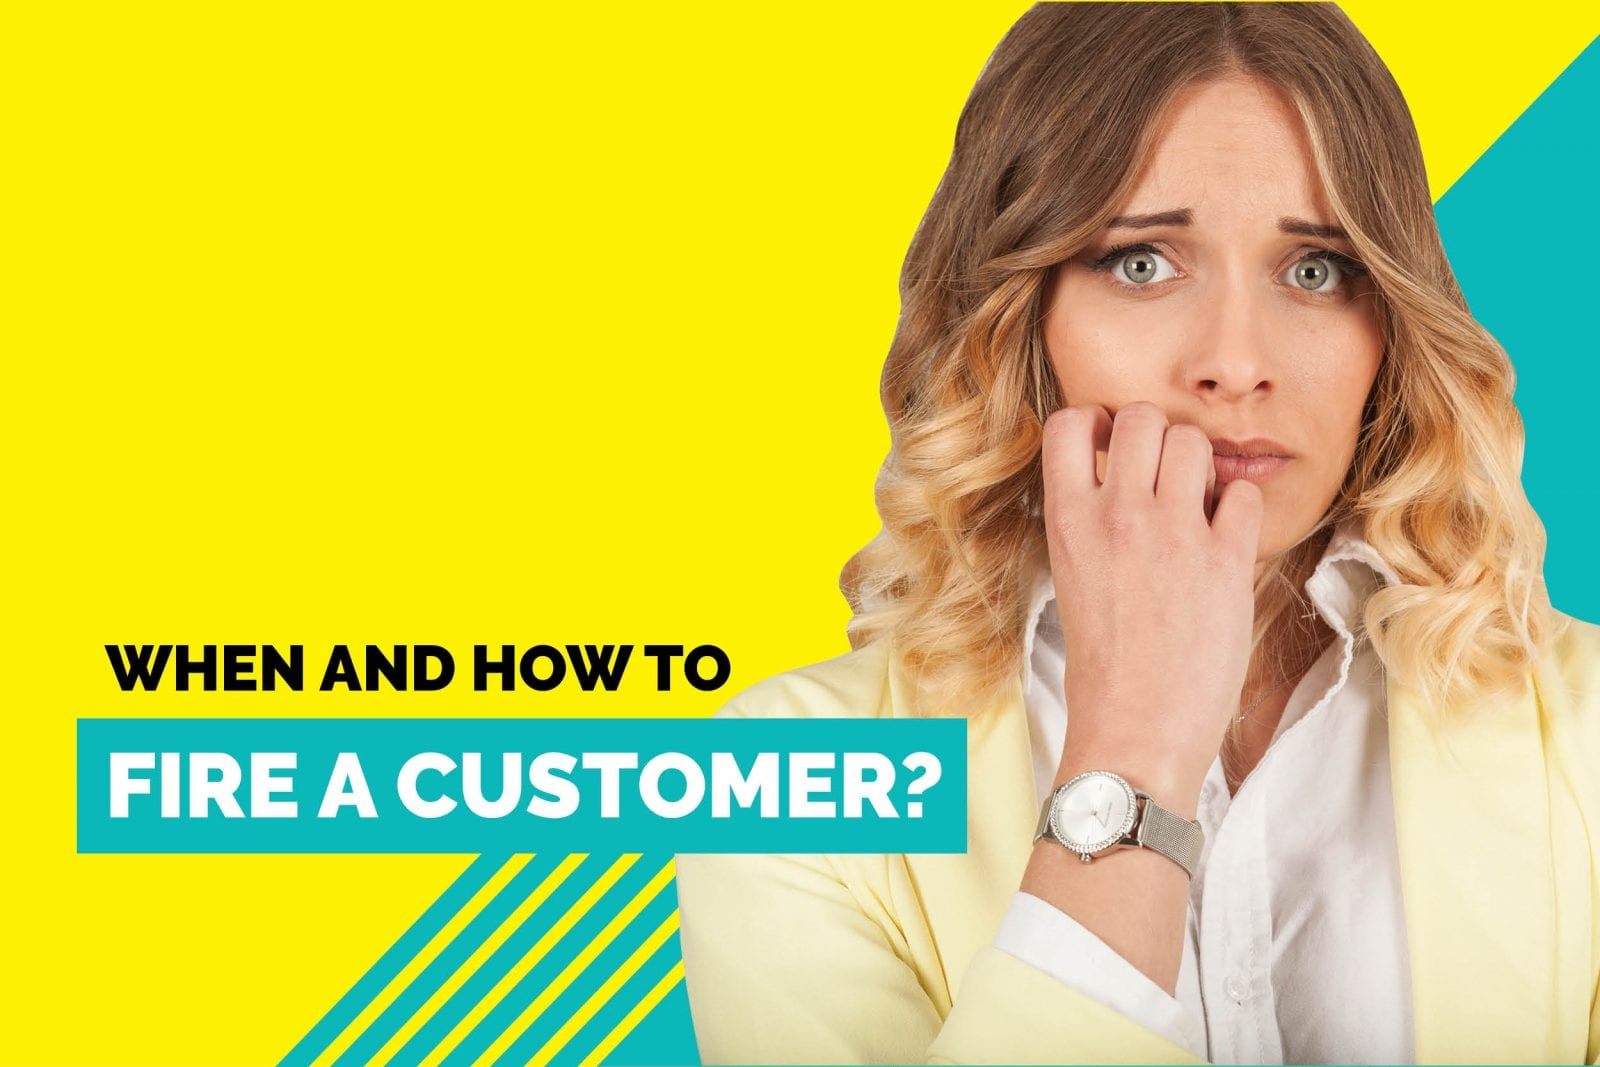 When and How to Fire a Customer?